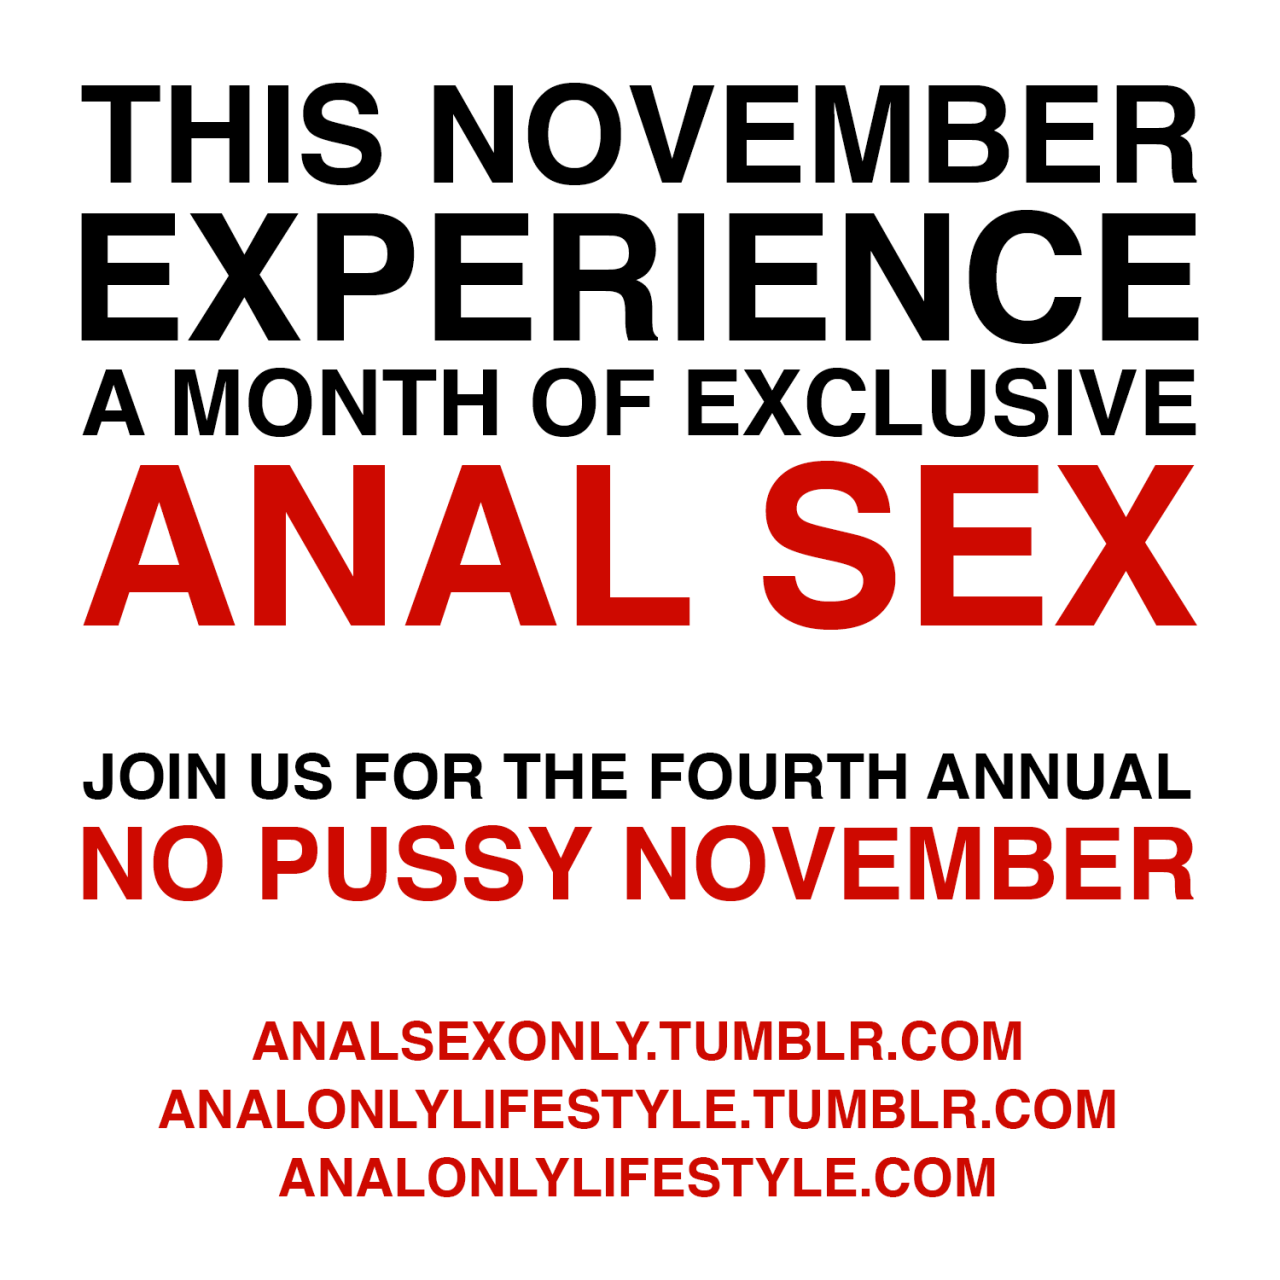 This November Experience A Month of Exclusive Anal Sex - Join Us In The Fourth Annual No Pussy November